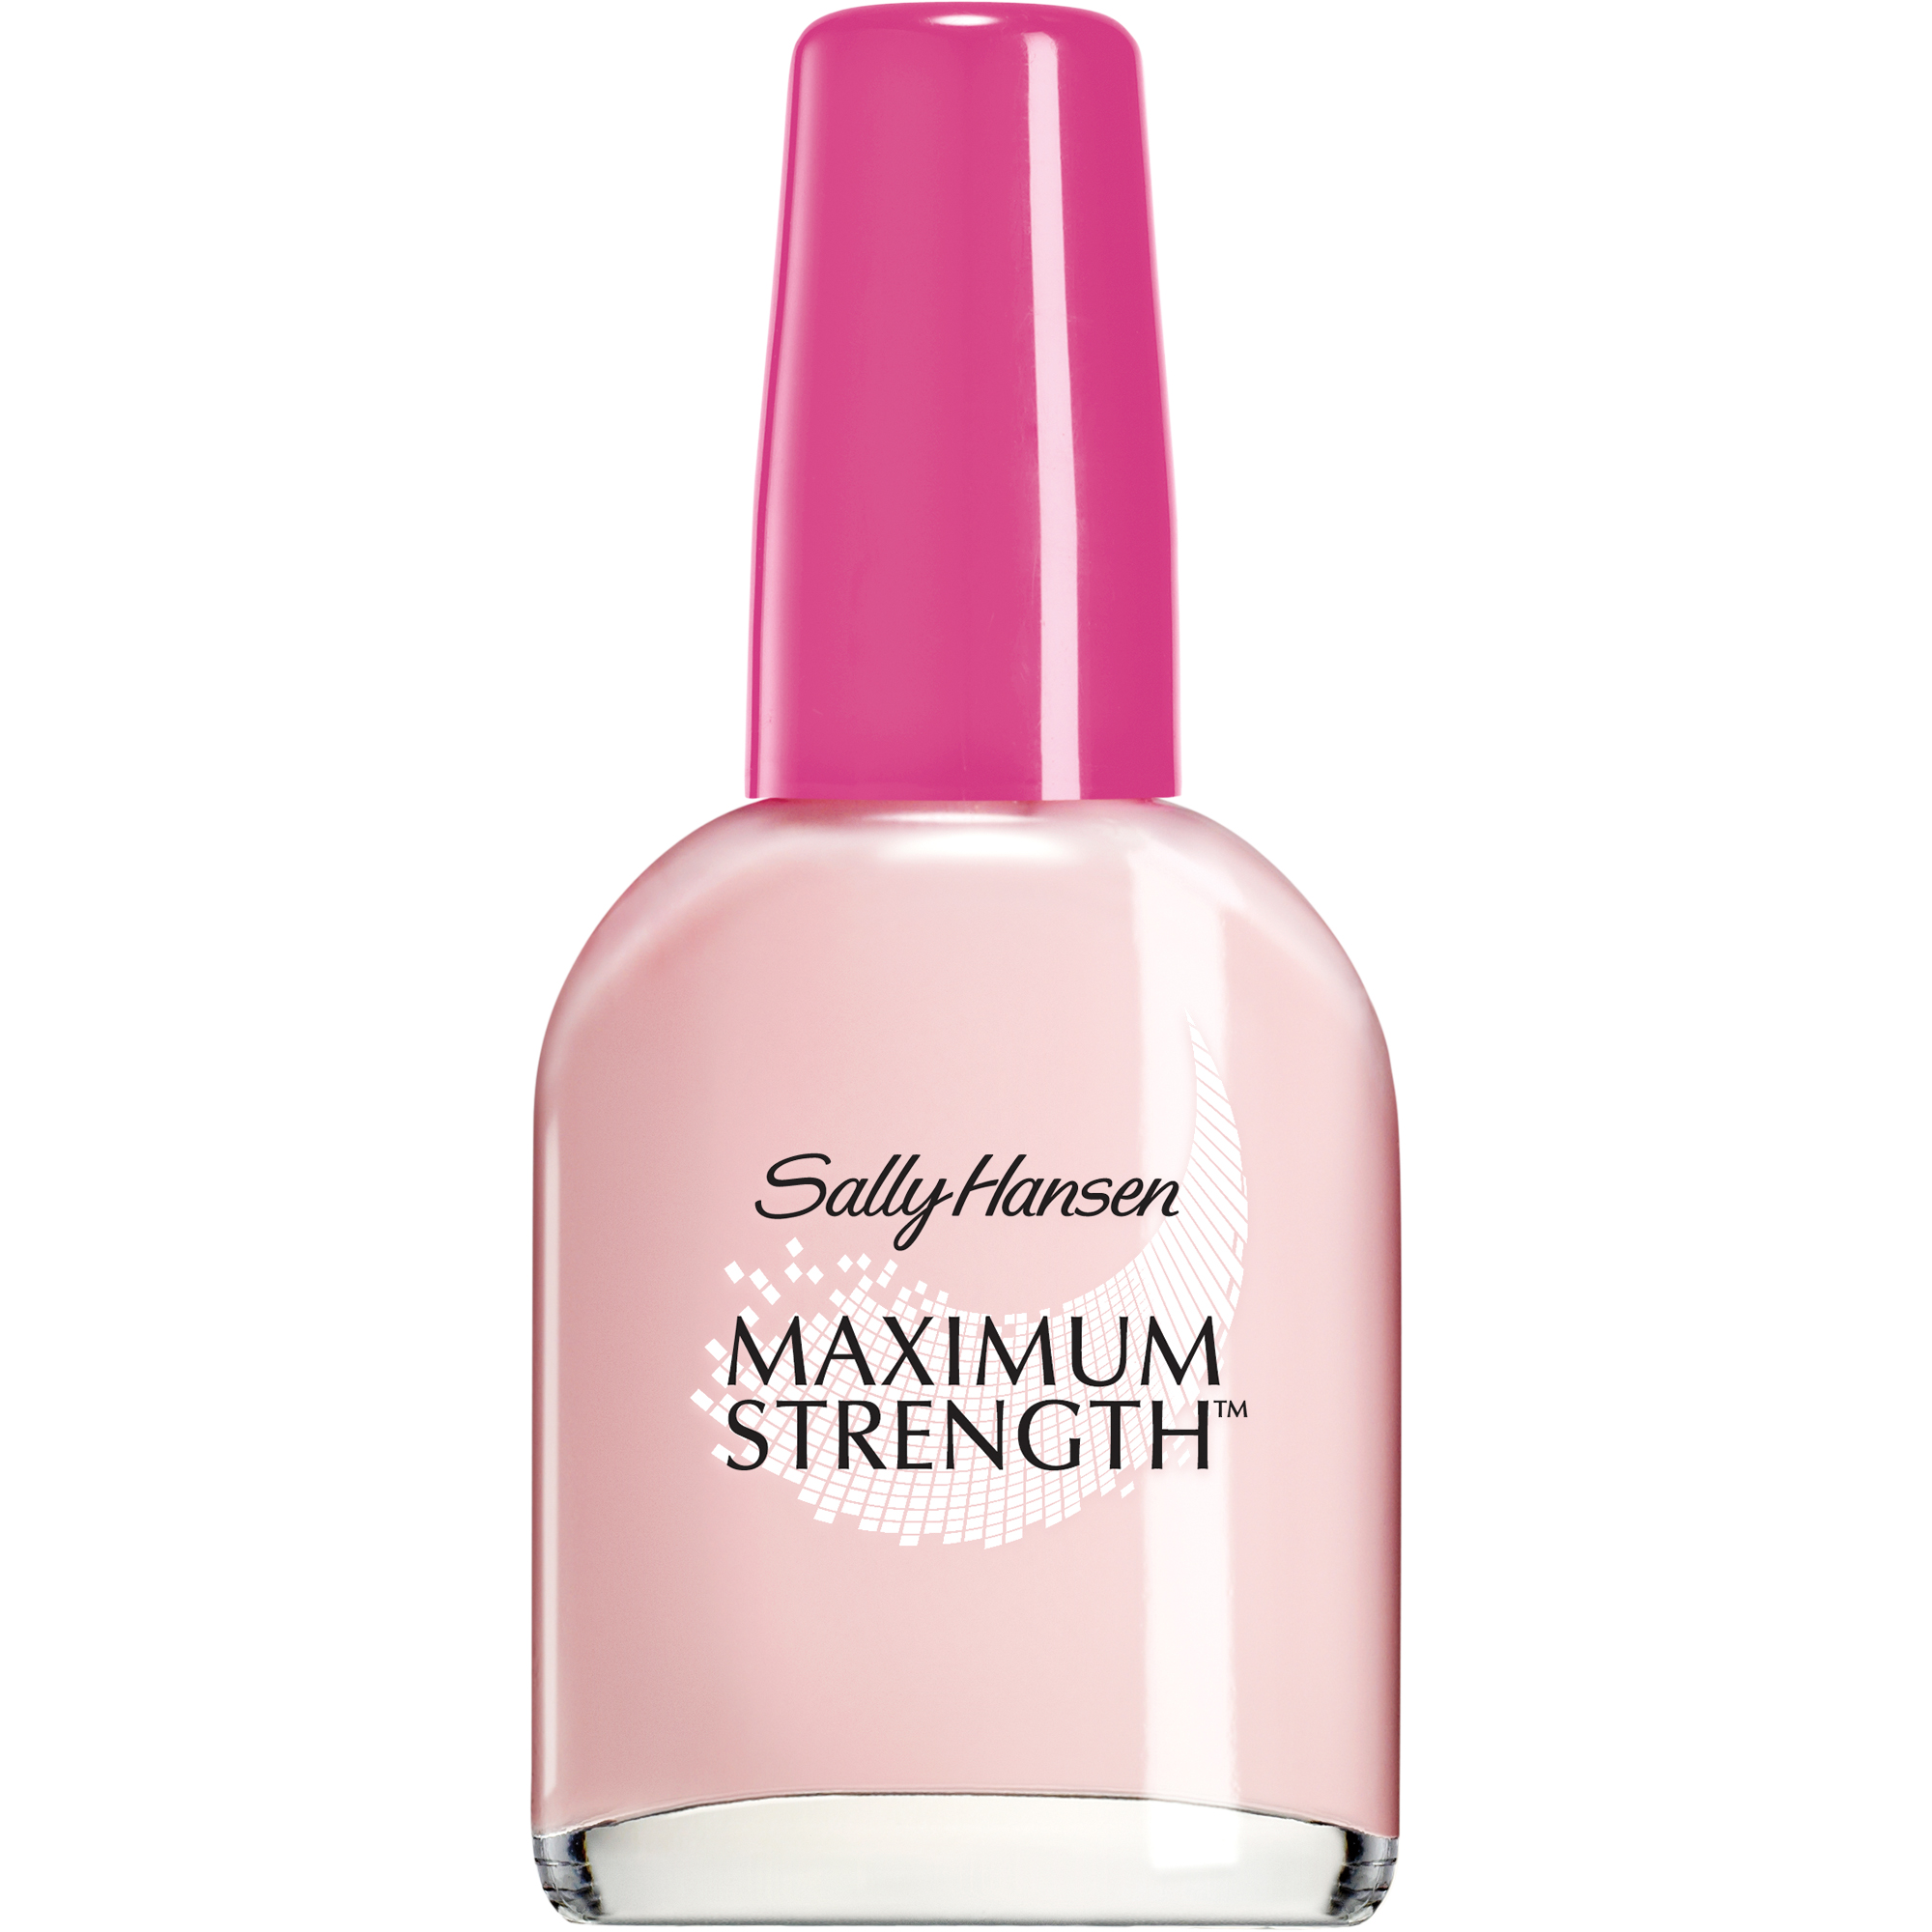 Sally Hansen Maximum Strength Nail Treatment, 0.45 fl oz - Walmart.com